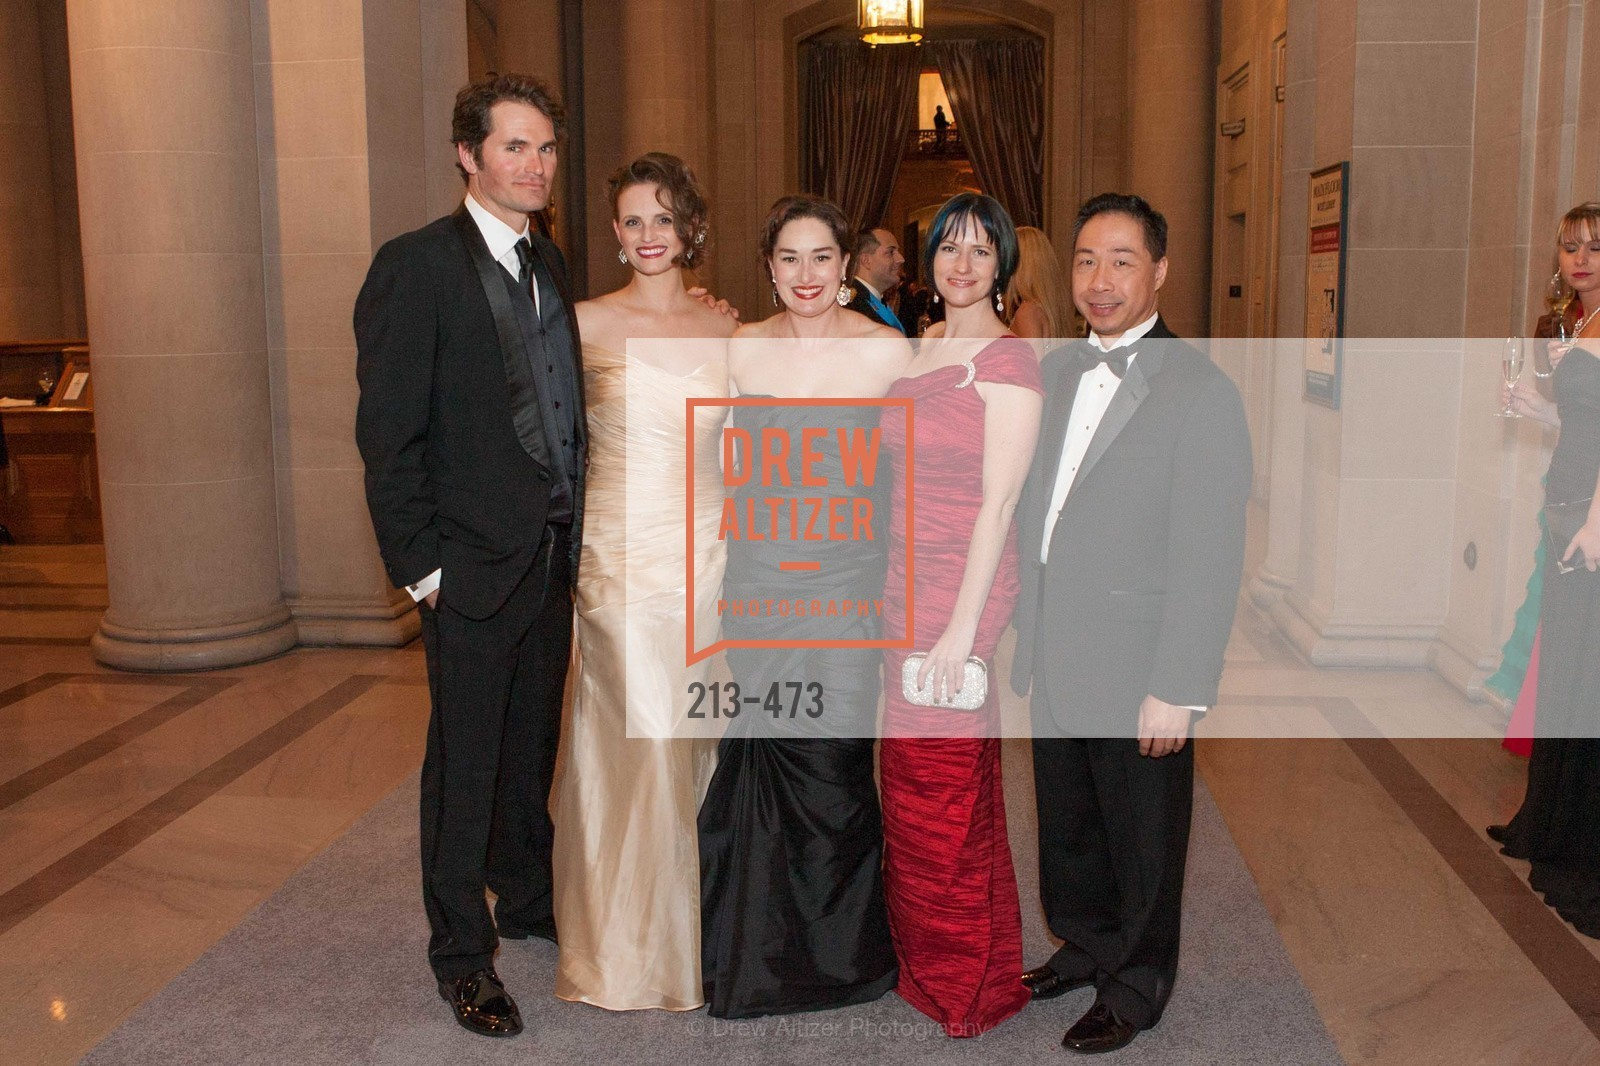 Rhett Butler, Alyson Blume, Bridget Dixon Nguyen, Joanna Winter, Wilson Yan, ENCORE! at San Francisco BALLET'S 2014 Season Opening Night Gala, US. US, January 22nd, 2014,Drew Altizer, Drew Altizer Photography, full-service agency, private events, San Francisco photographer, photographer california